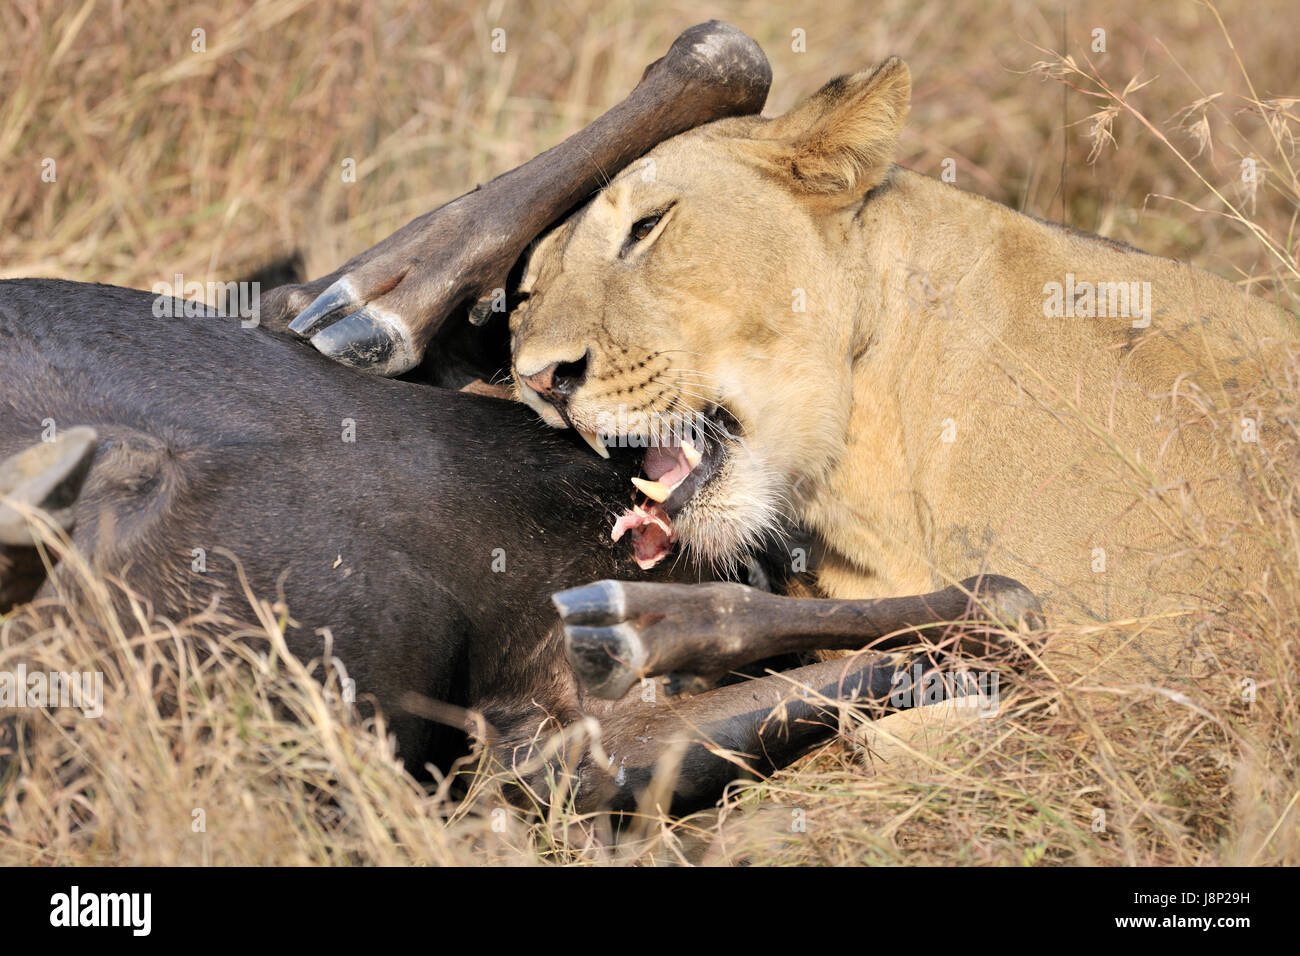 Lioness (Panthera leo) feeding on the carcass of a just caught Blue Wildebeest (Connochaetes taurinus), Serengeti - Stock Image